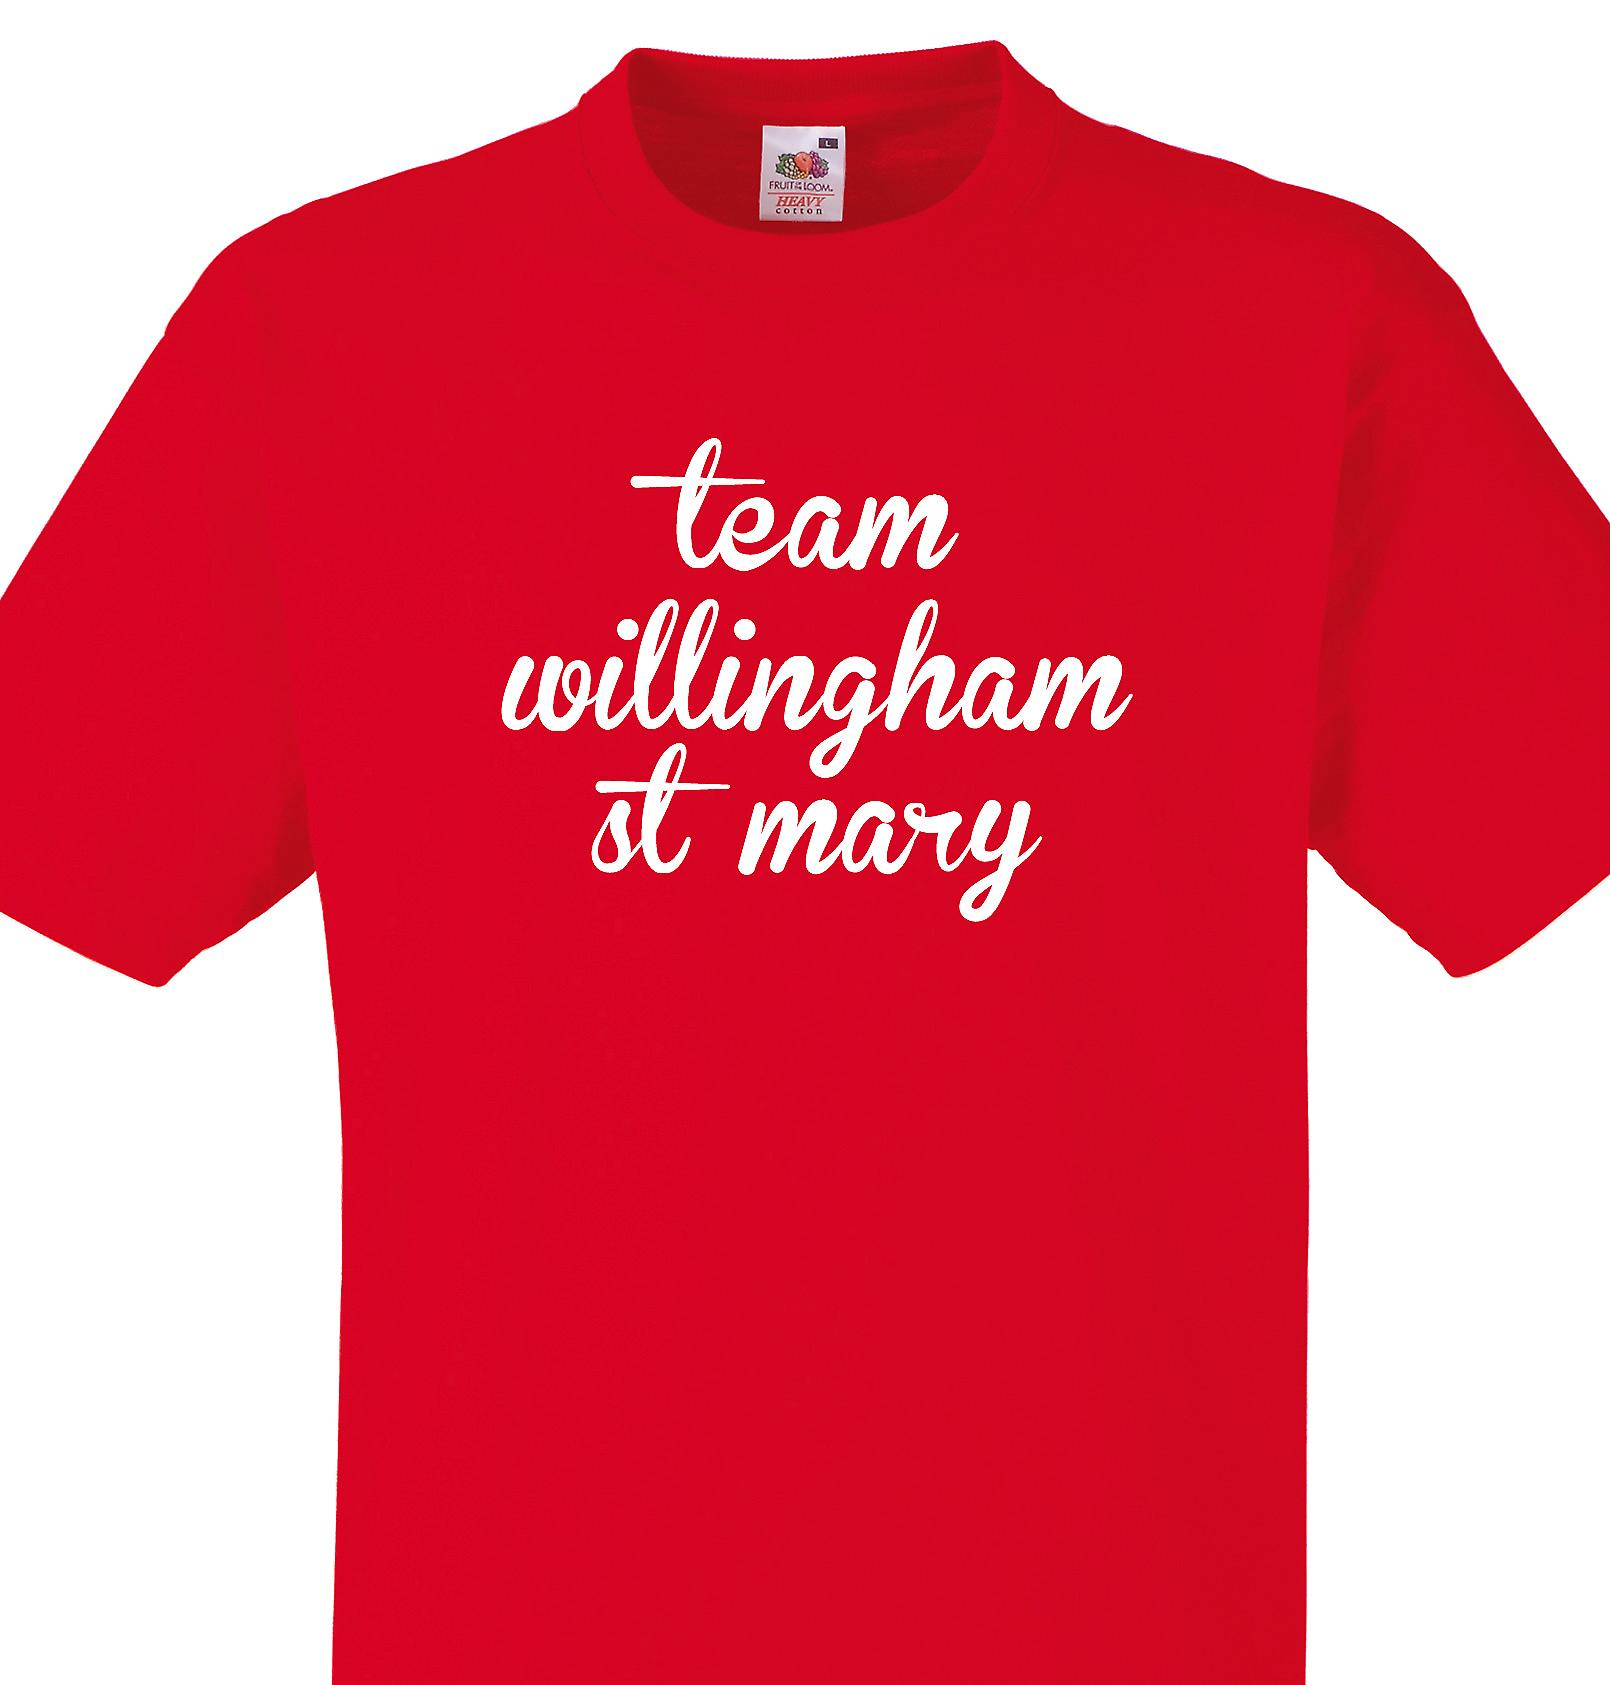 Team Willingham st mary Red T shirt